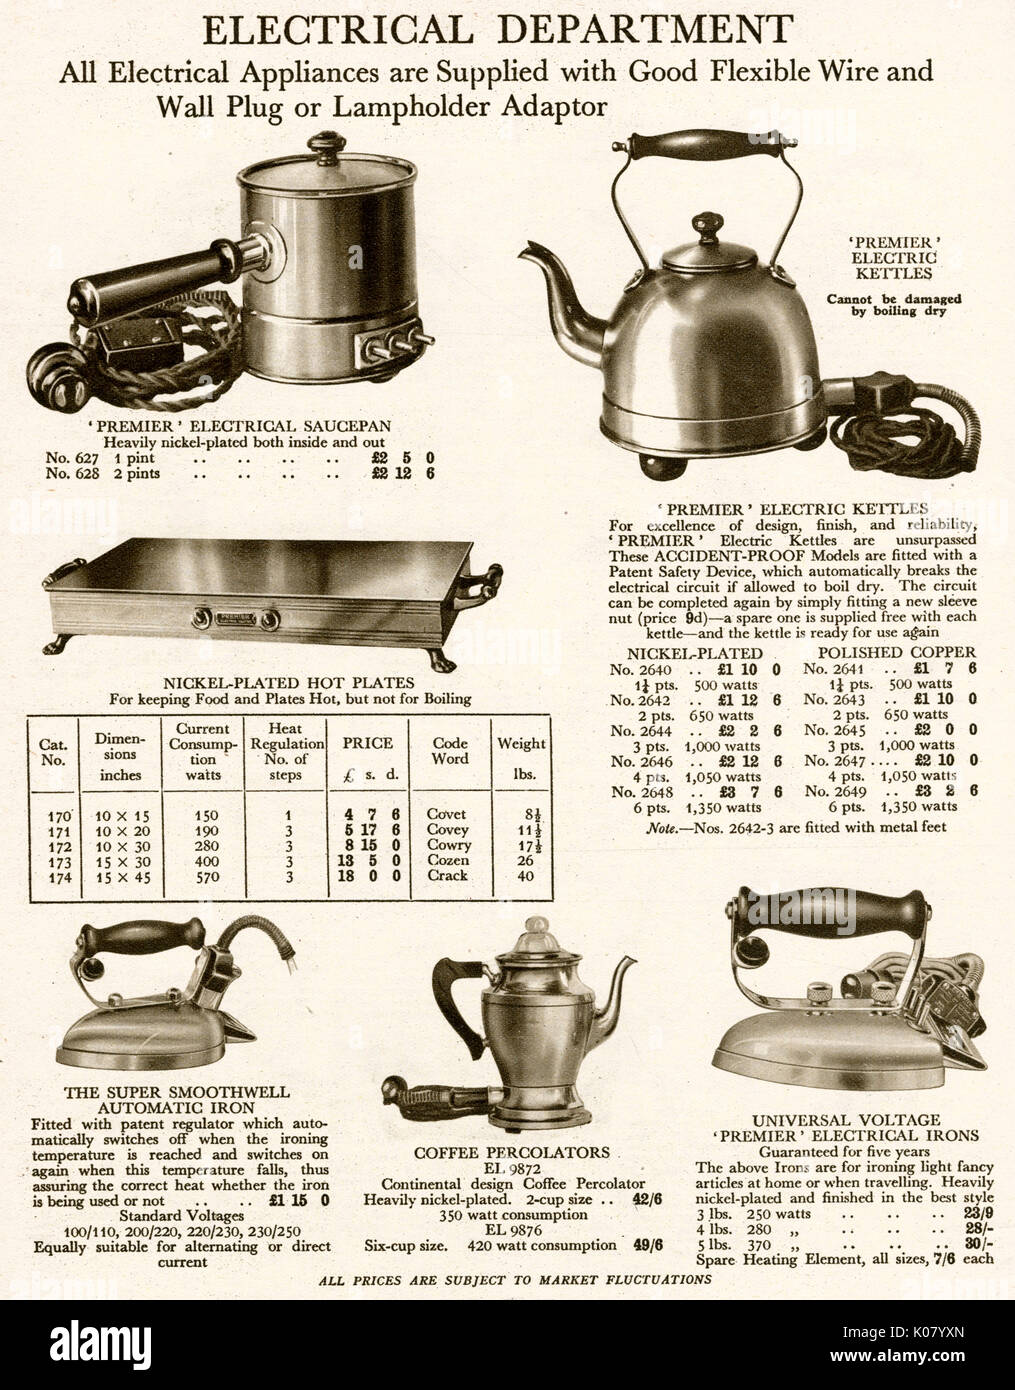 hight resolution of products from the harrod s catalogue electrical department household items with a flexible wire and wall plug date 1929